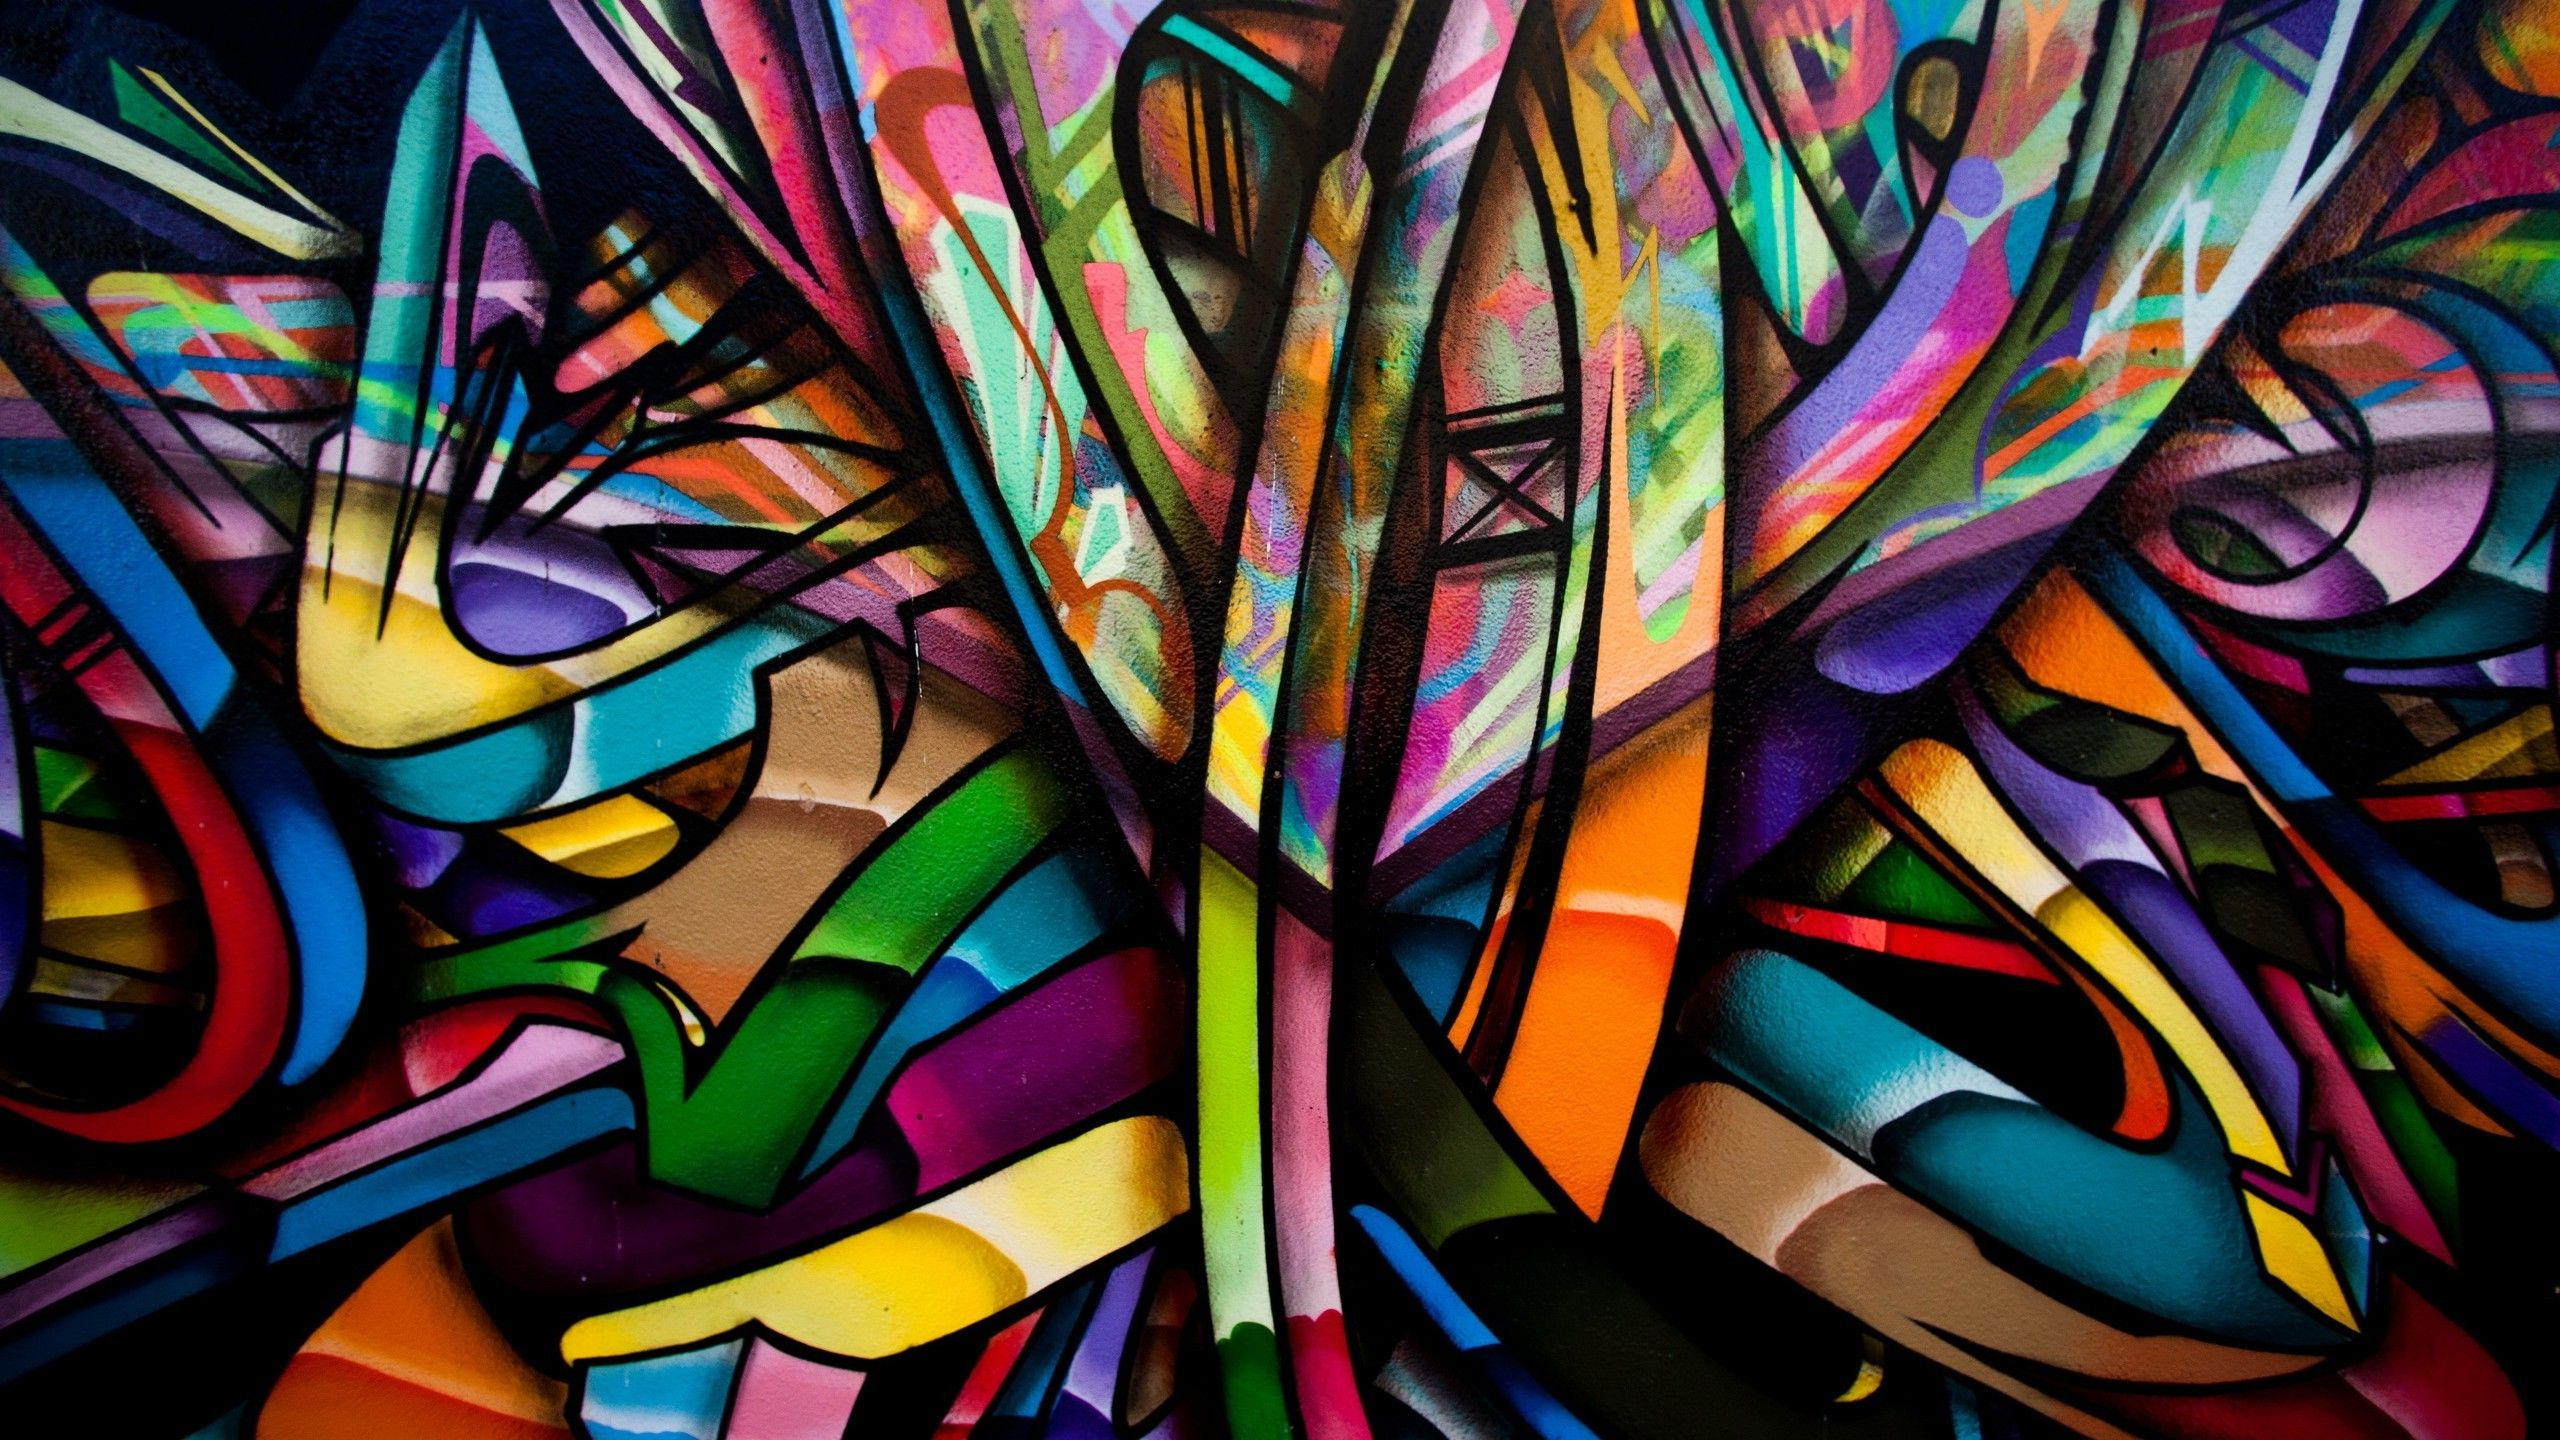 abstract, Colorful, Graffiti, Walls, Artwork, Painting ...